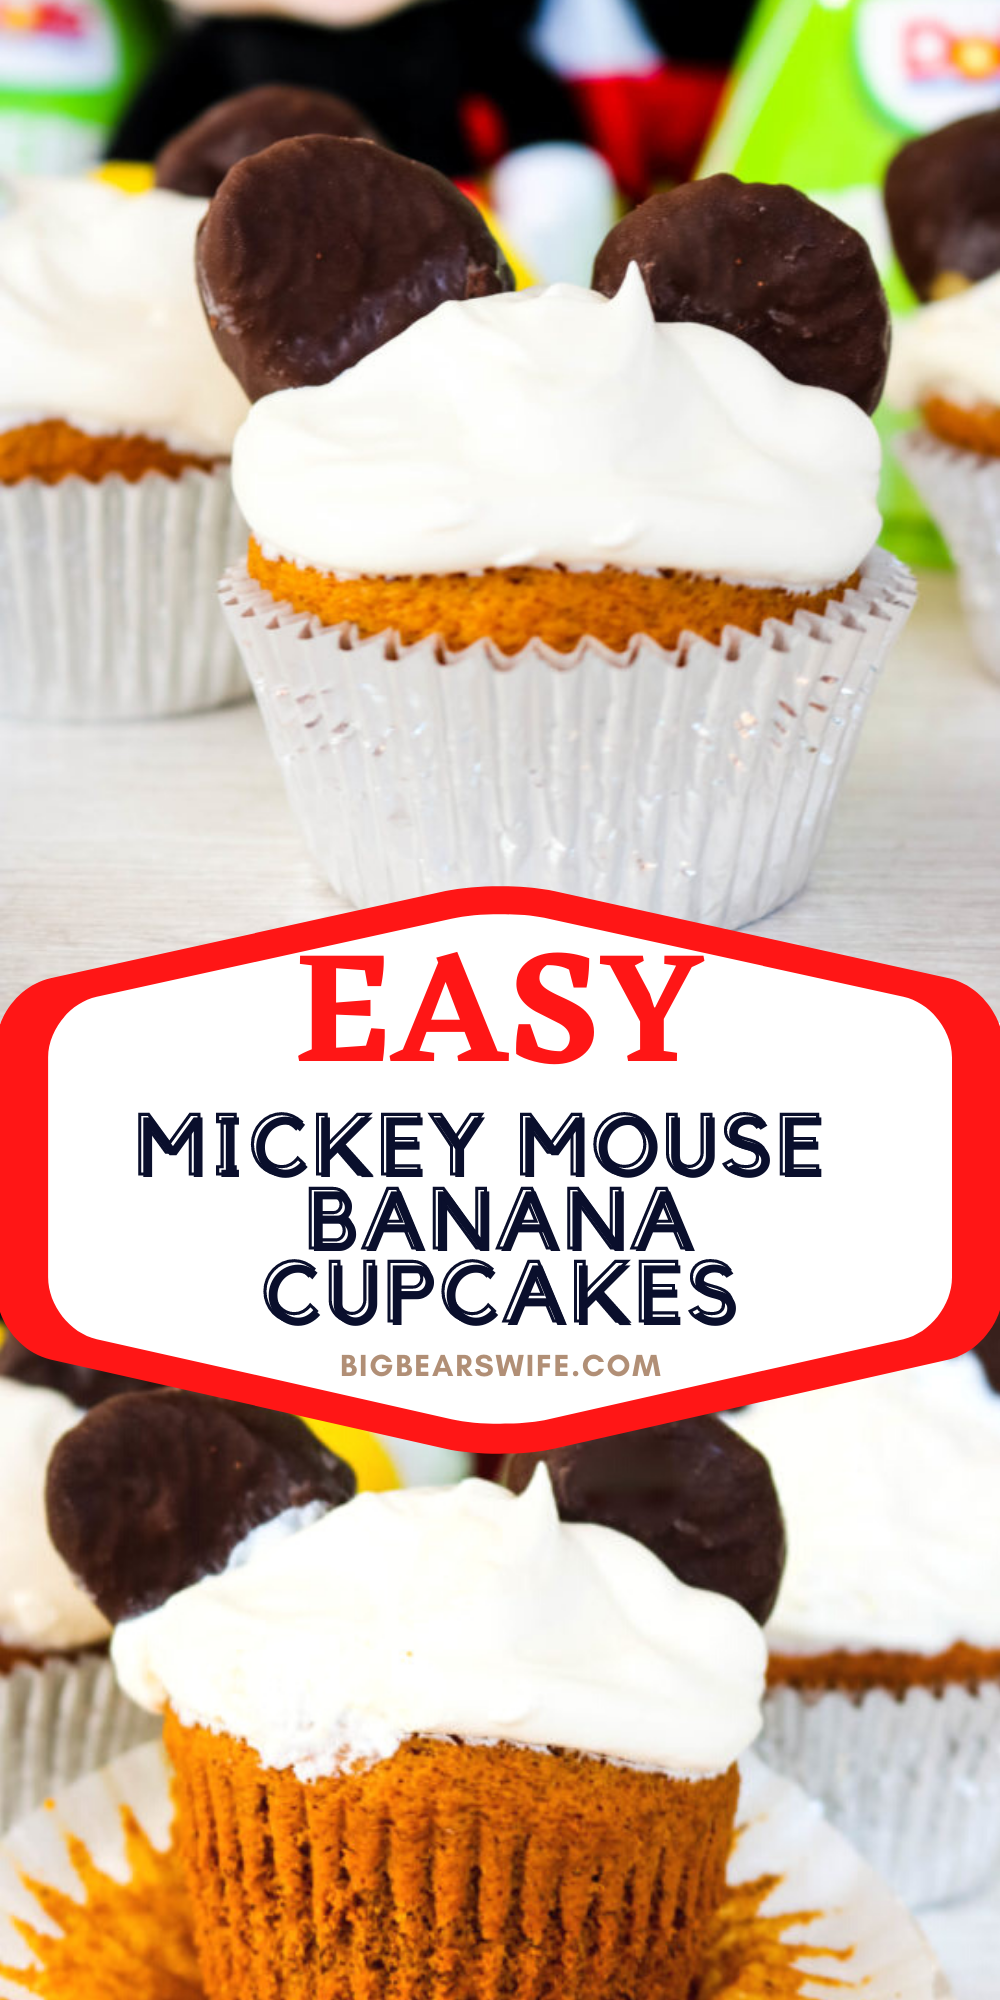 Mickey Mouse is turning90 and it's time to celebrate his birthday with theseMickey Mouse Birthday Banana Cupcakes #Mickey90 #MickeyTrueOriginal #Disney #Dole #DoleHero via @bigbearswife